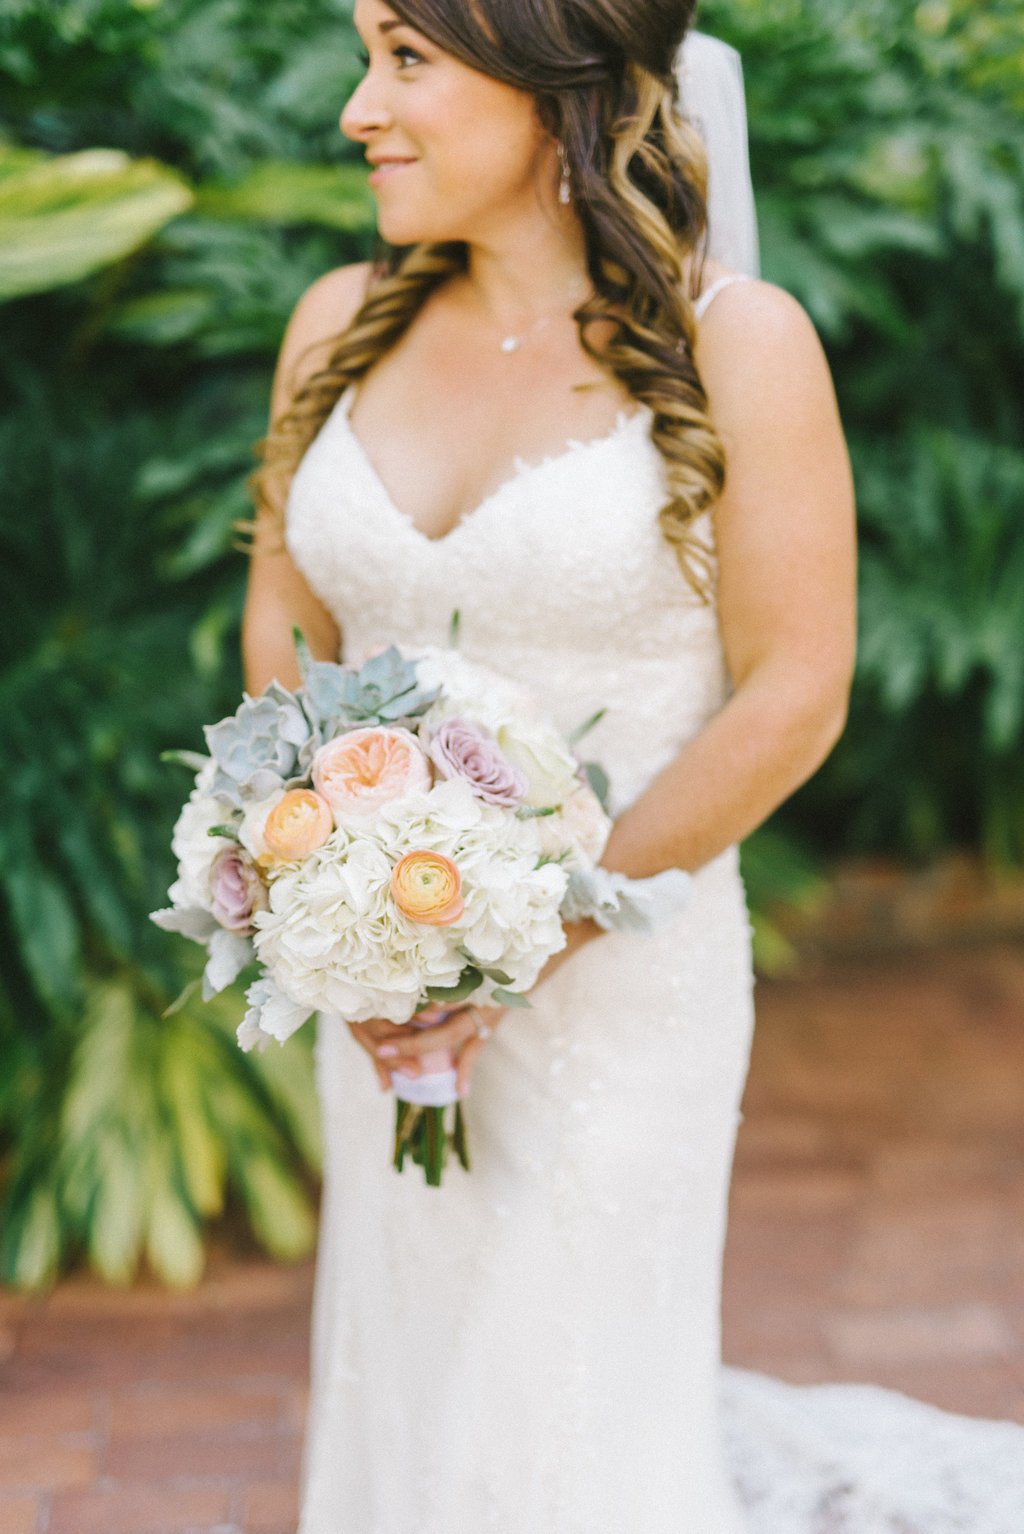 Outdoor Florida Bride Wedding Portrait in V Neck Lace Fitted and Spaghetti Strap Wedding Dress with White Hydrangeas, Blush Pink and Succulent Floral Bouquet | St. Pete Beach Photographer Kera Photography | Hair and Makeup Michele Renee the Studio